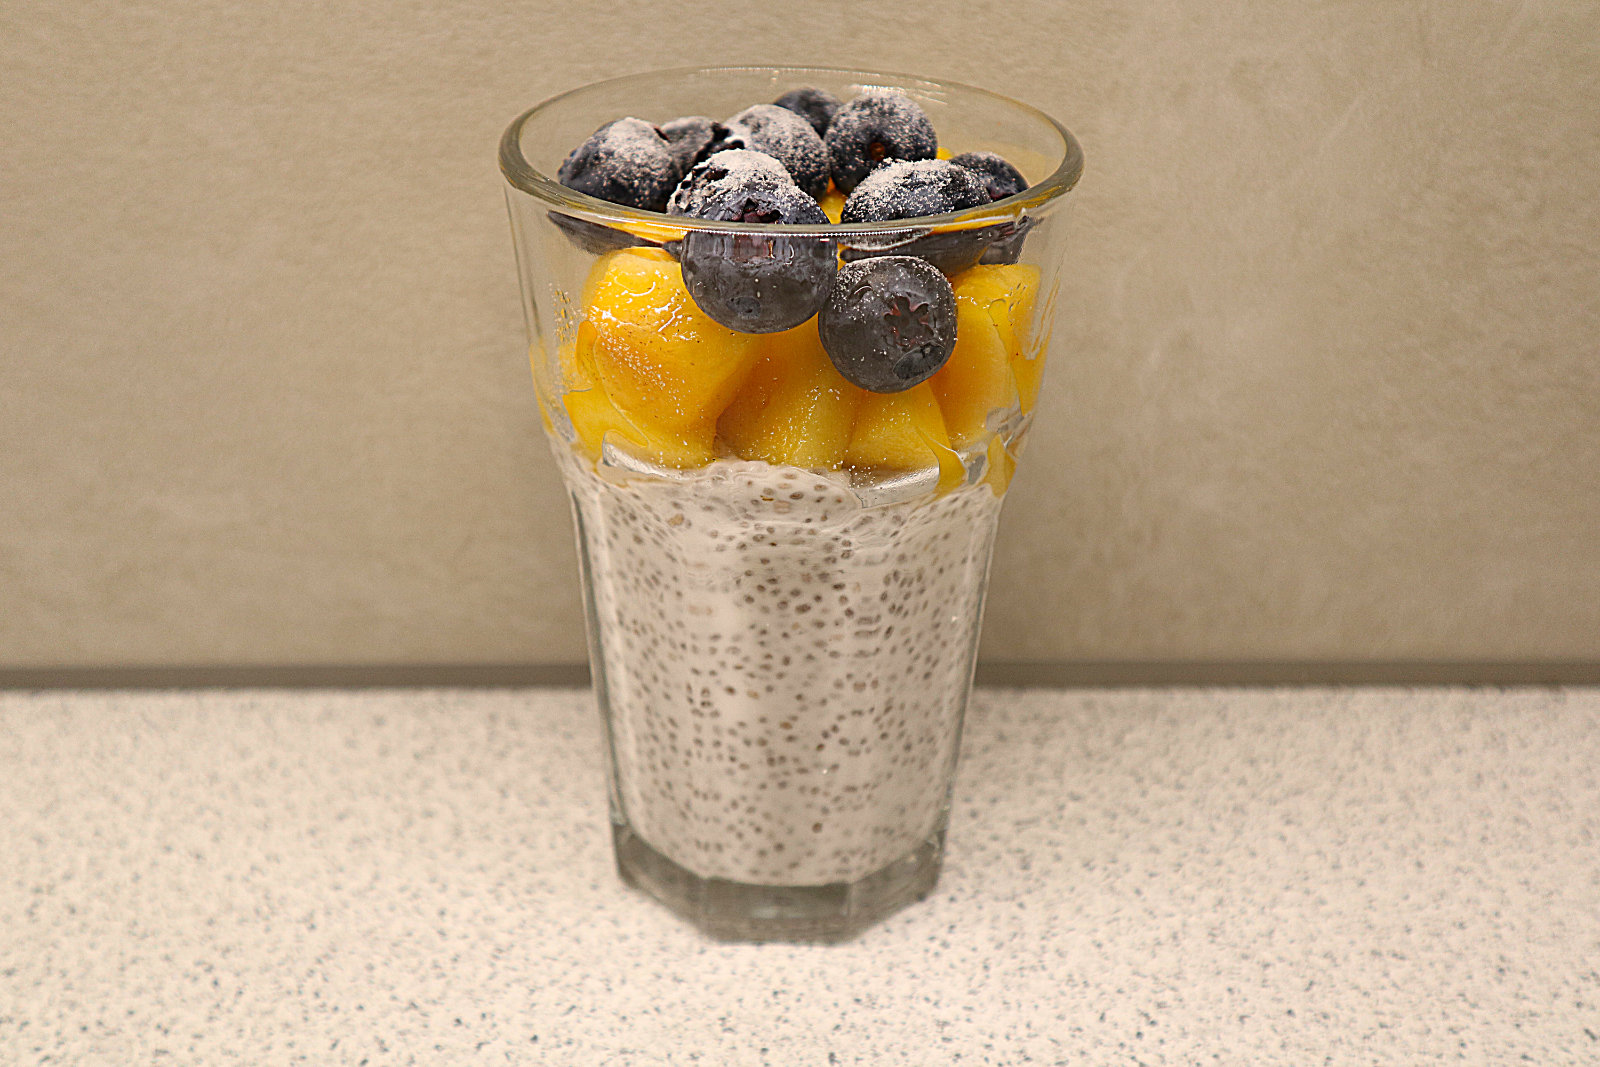 Chia-Pudding mit Obst